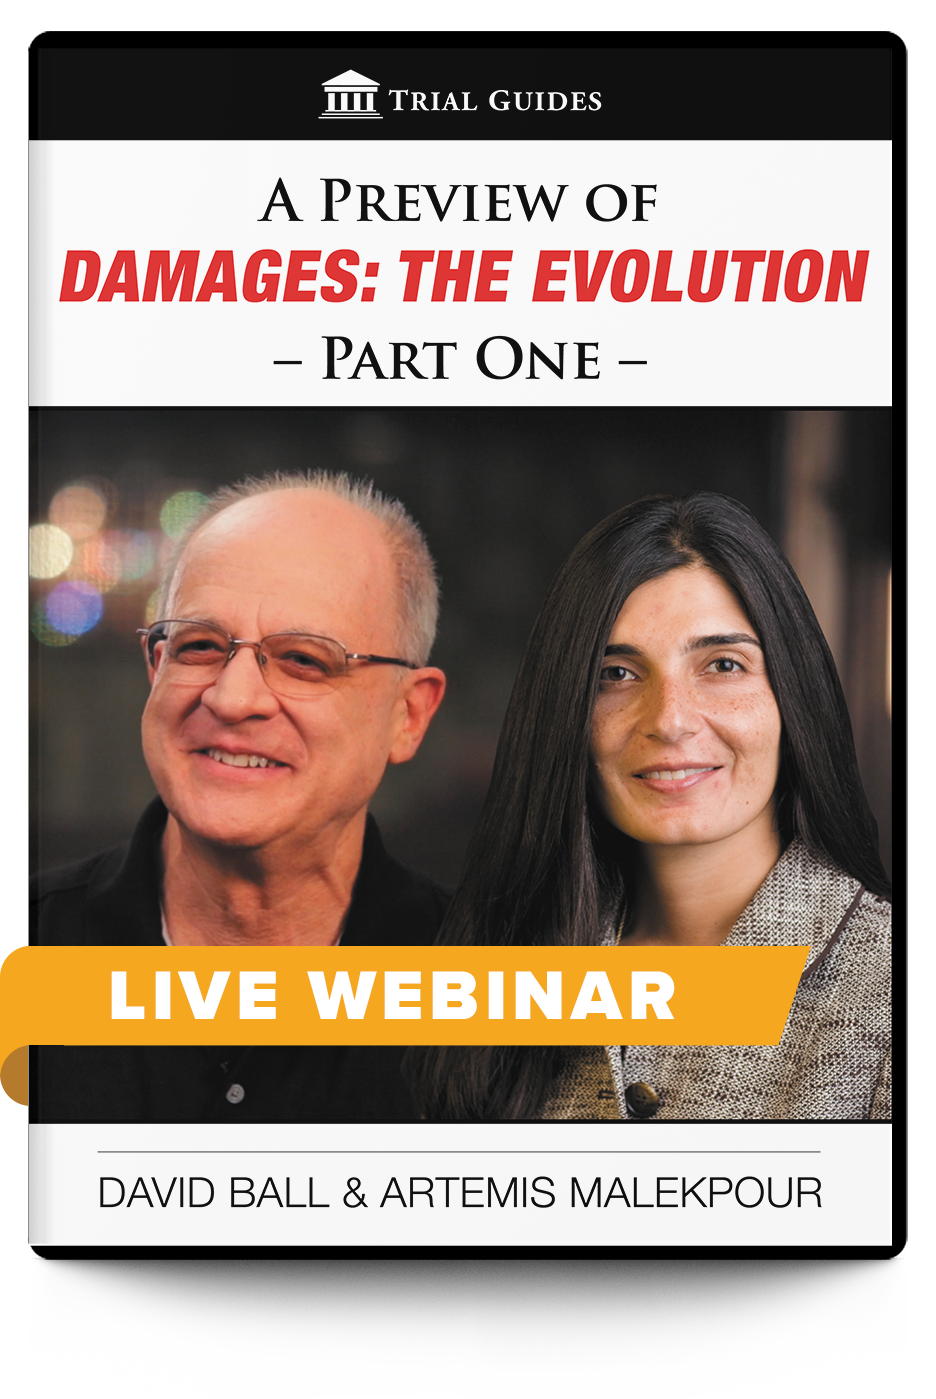 A Preview of Damages: The Evolution, Part 1 - Live Webinar